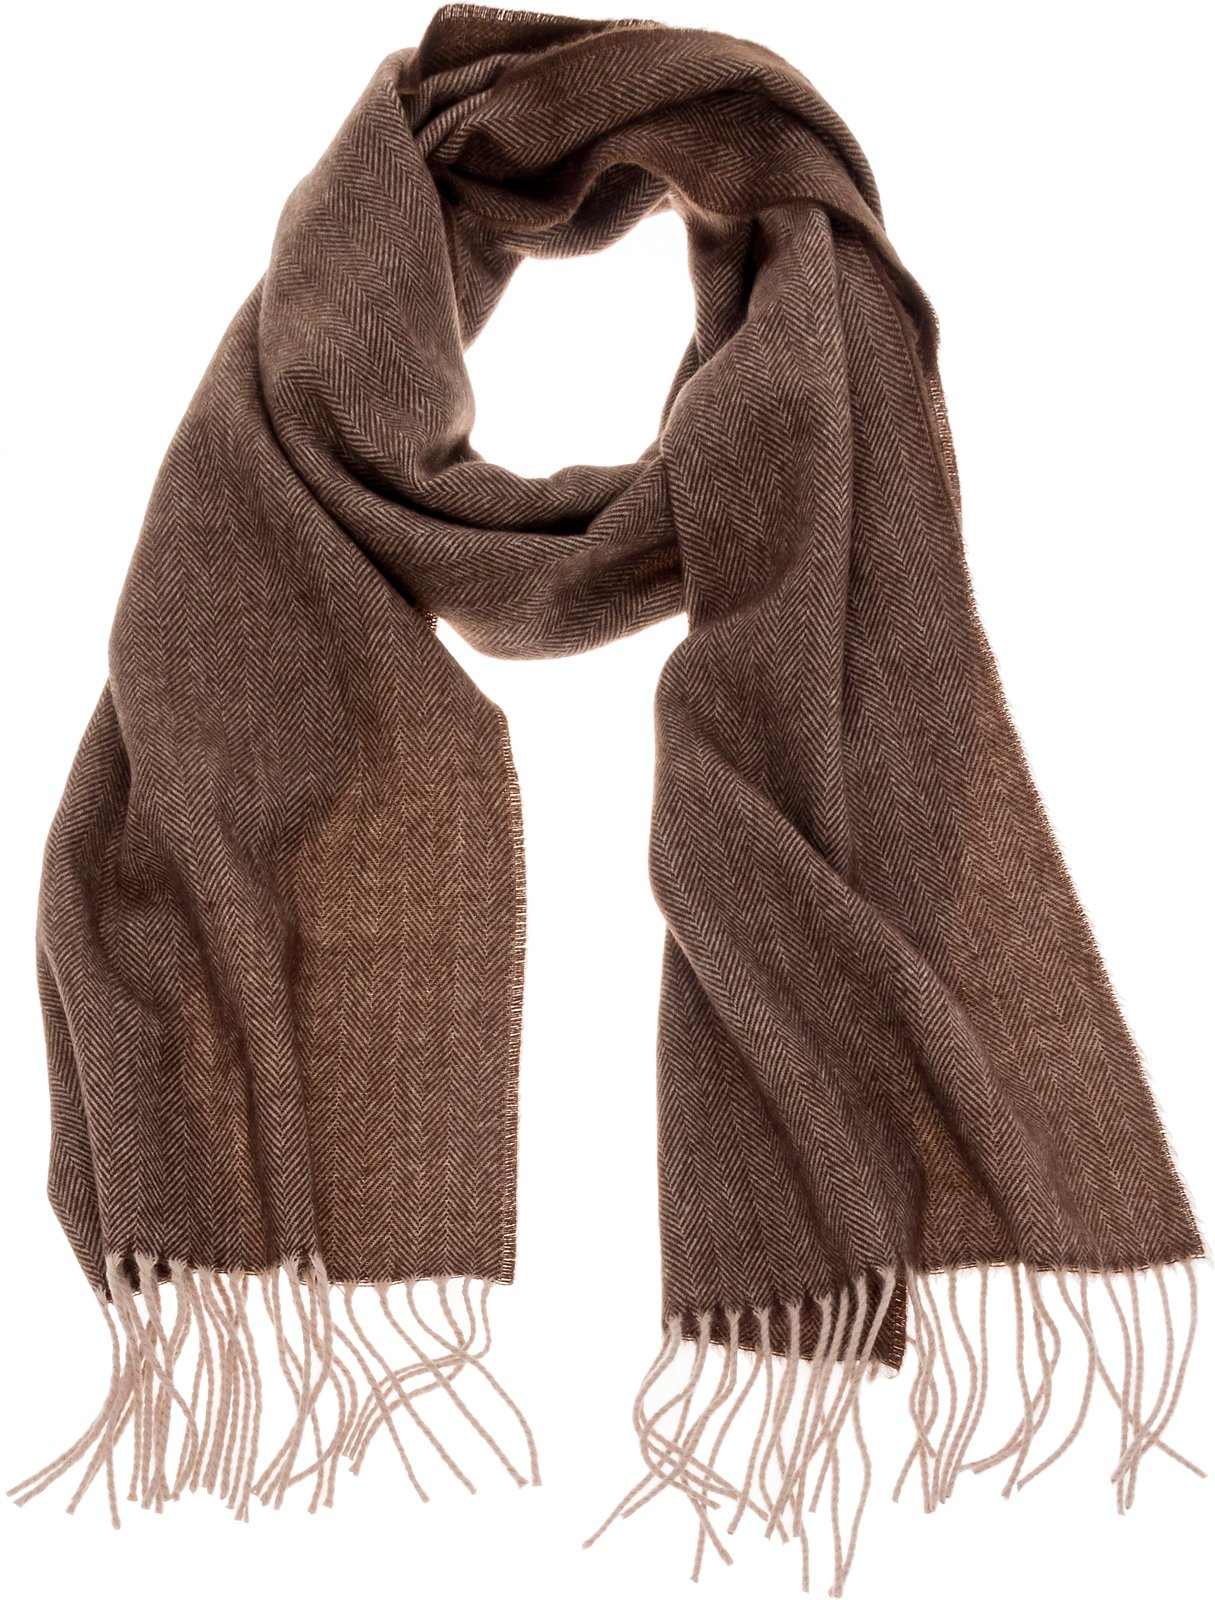 SilverHooks Soft & Warm Cashmere Scarf w/Gift Box (Brown Herringbone & Chevron)